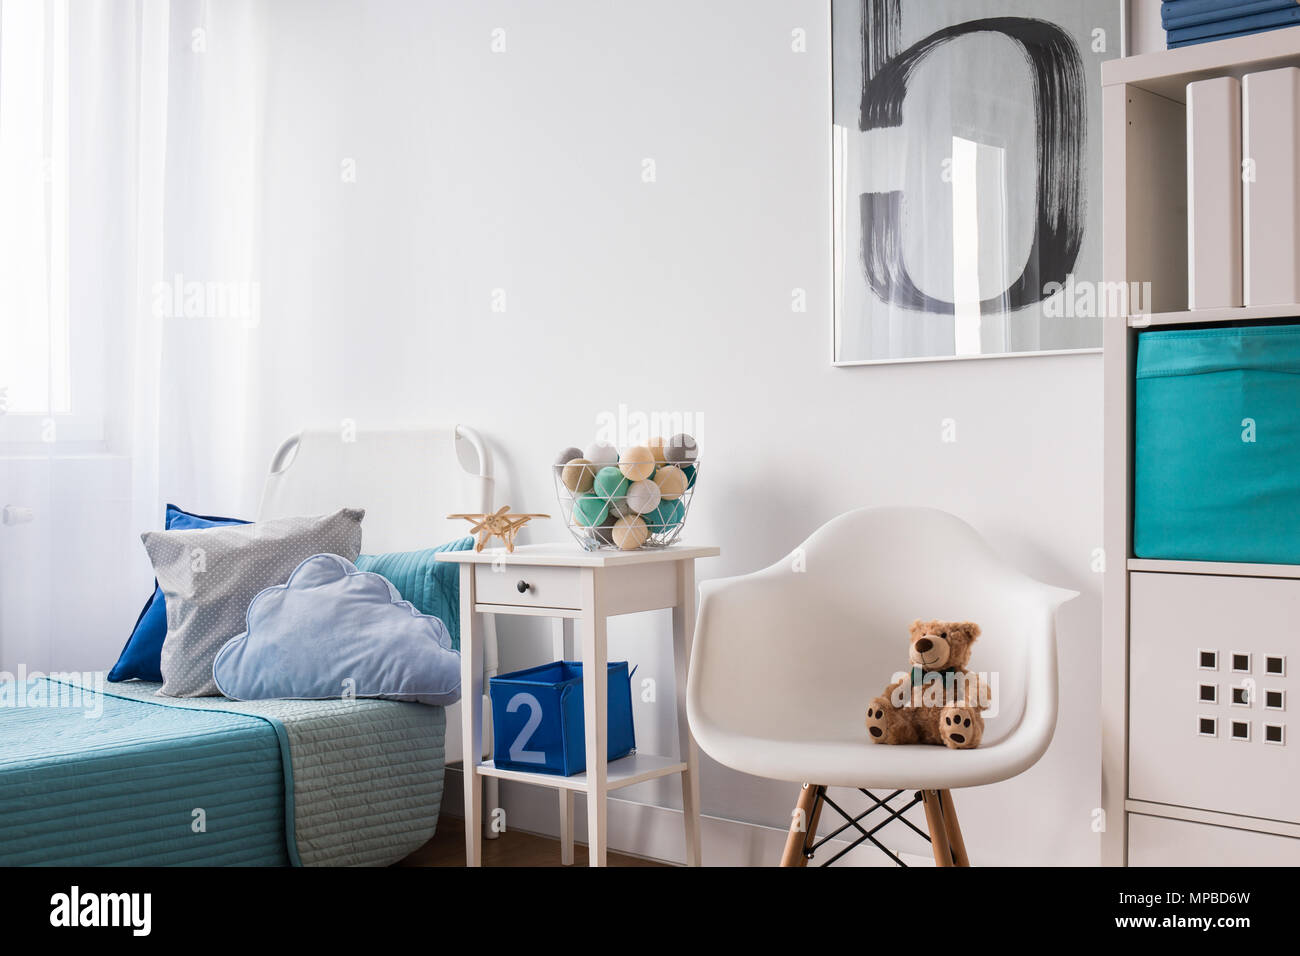 Seaside decorations on nightstand near blue single bed in ...